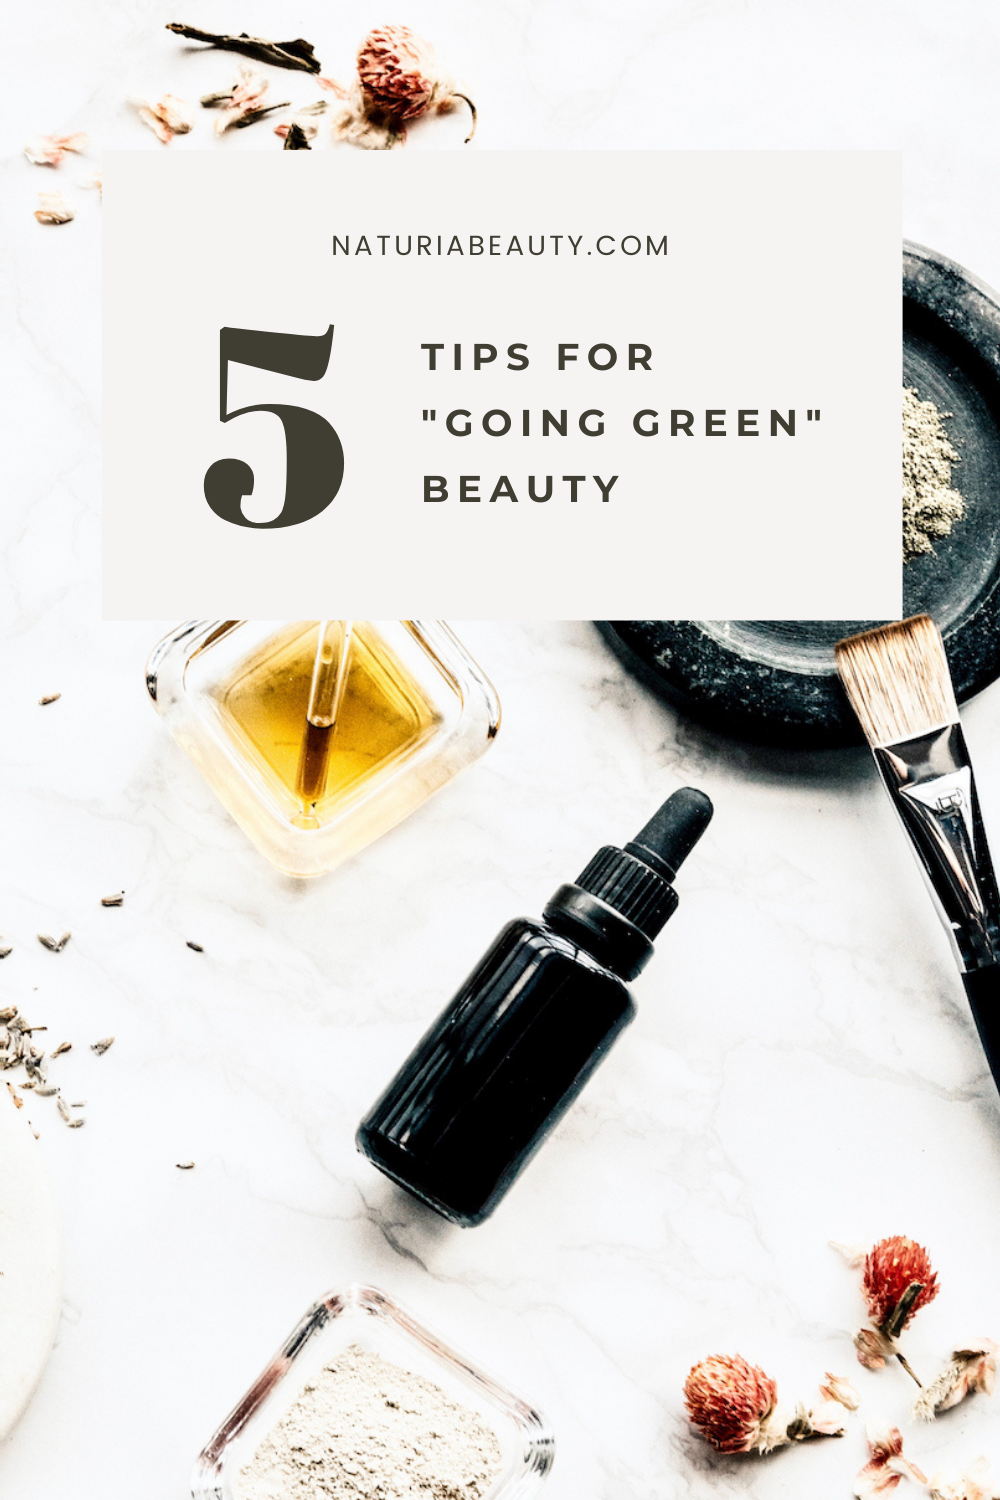 Tips for how to switch to natural / organic / clean beauty products